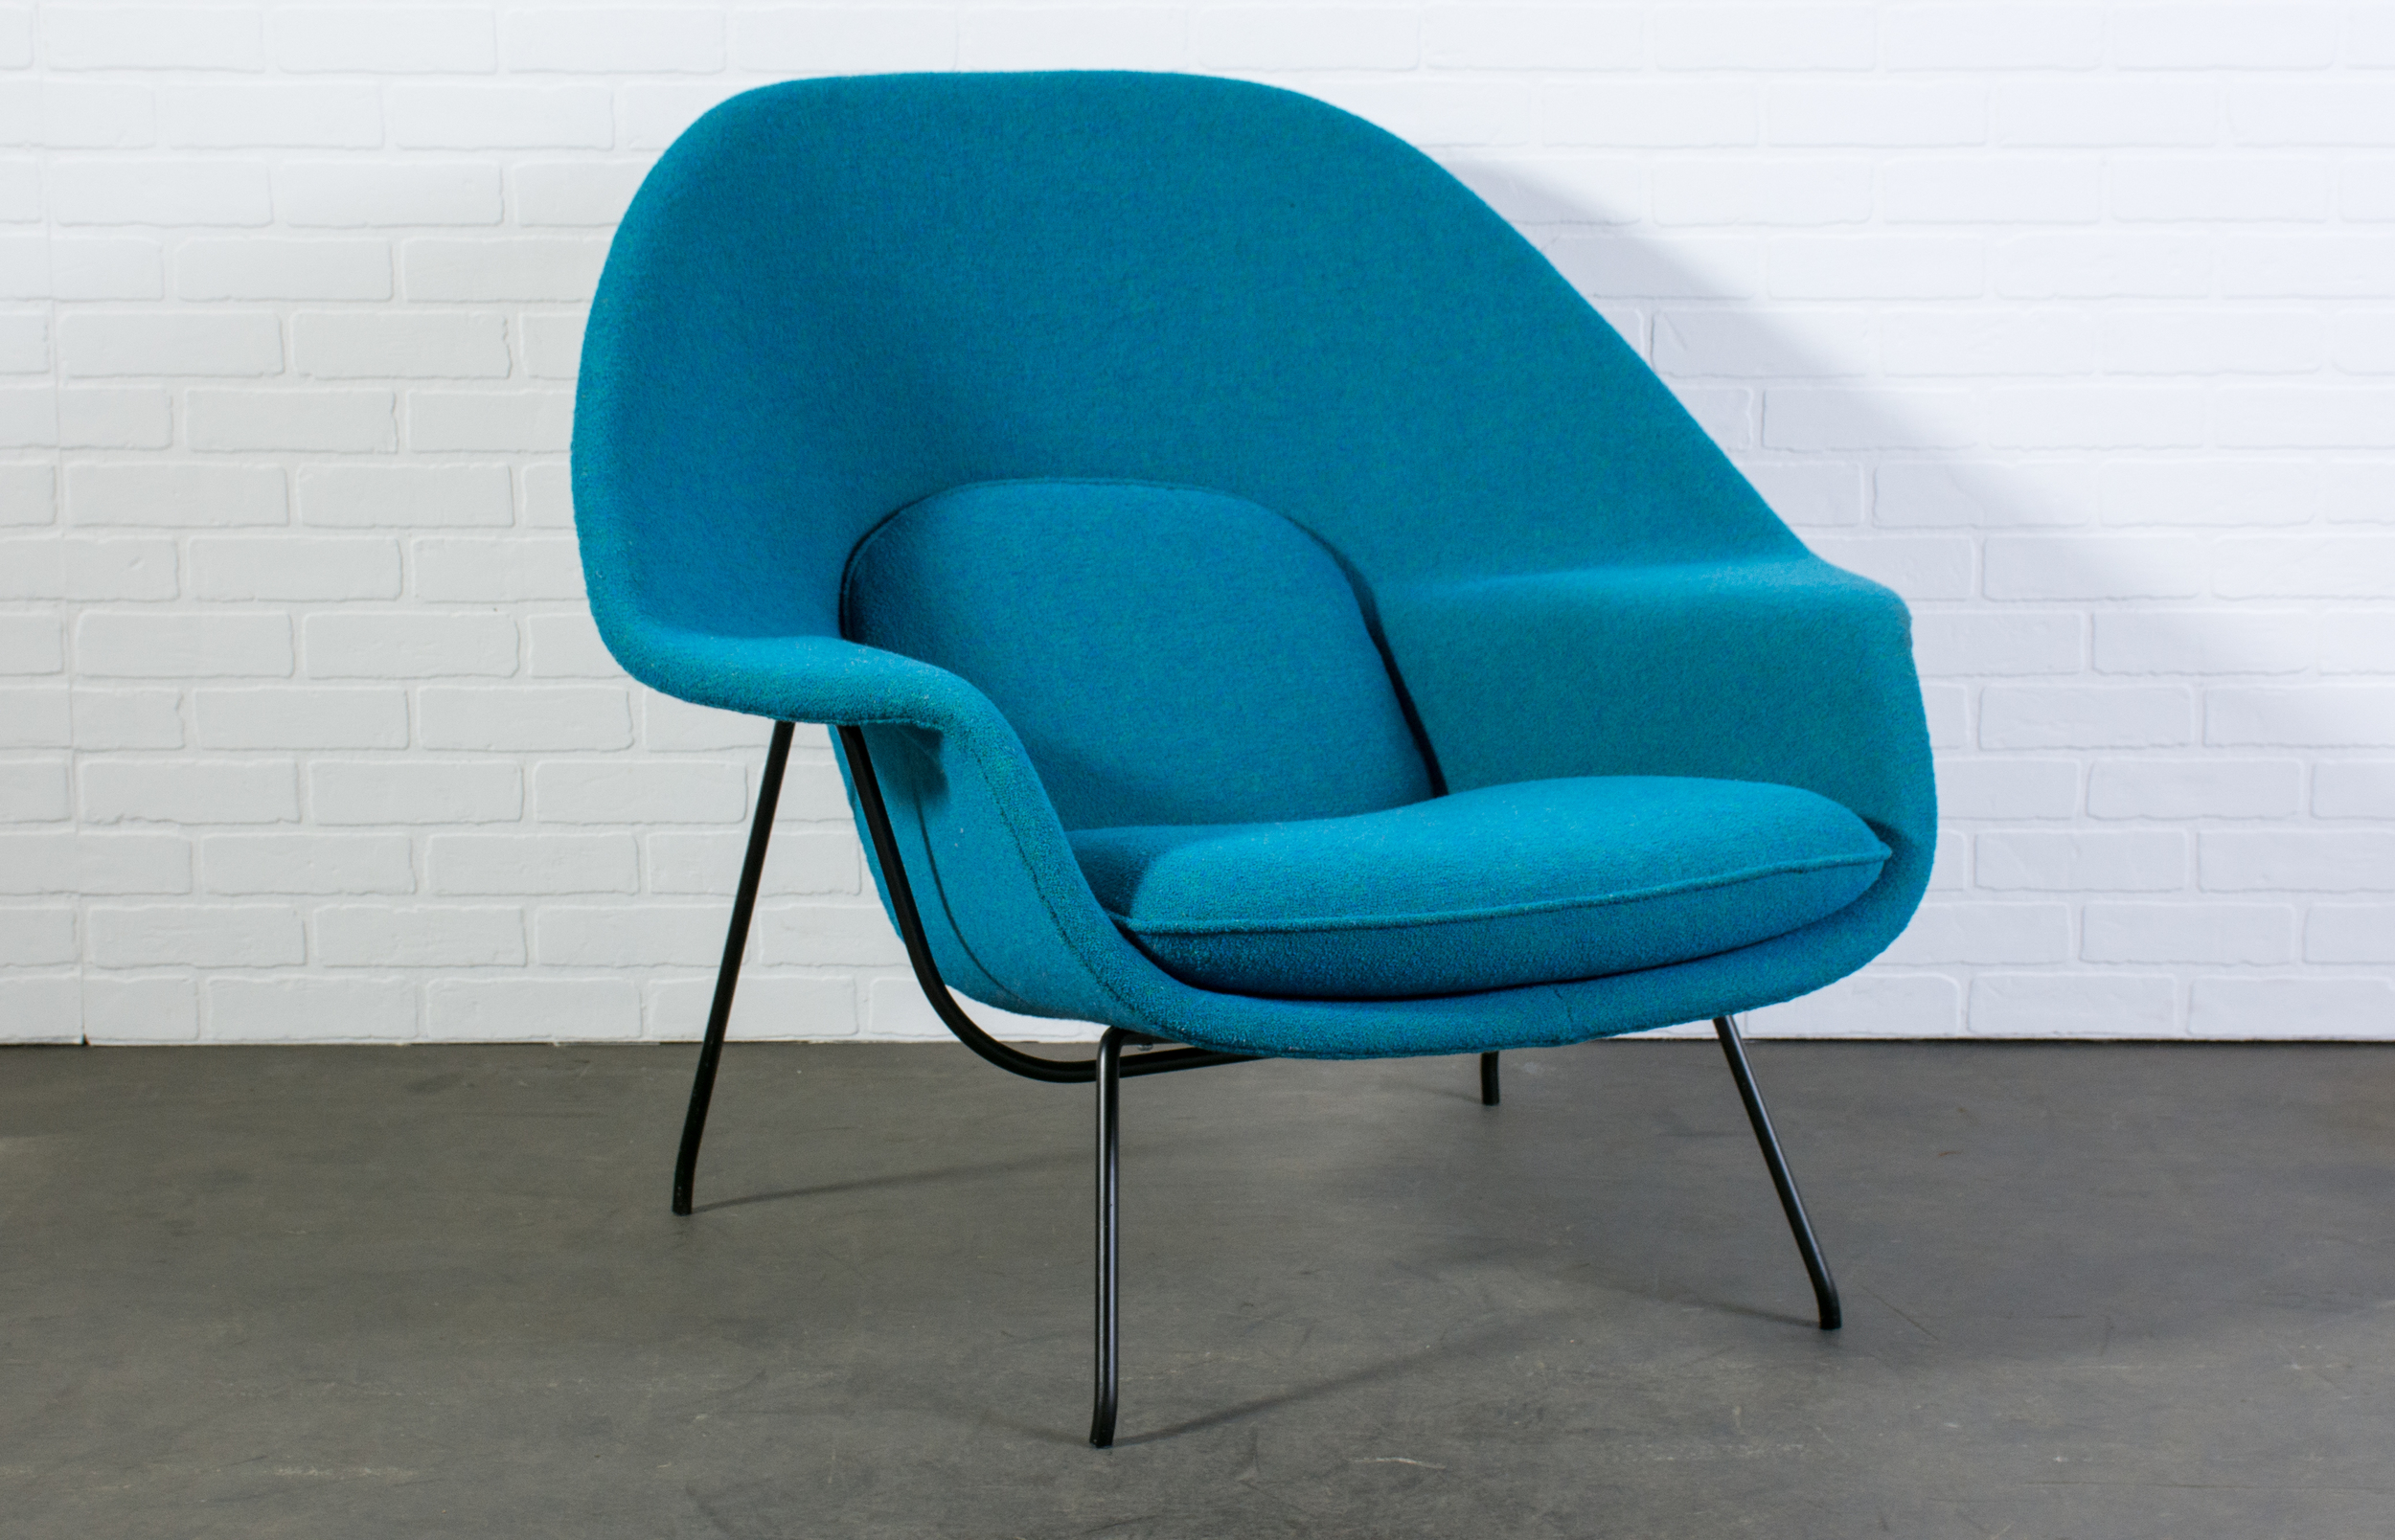 Vintage Womb Chair by Eero Saarinen for Knoll